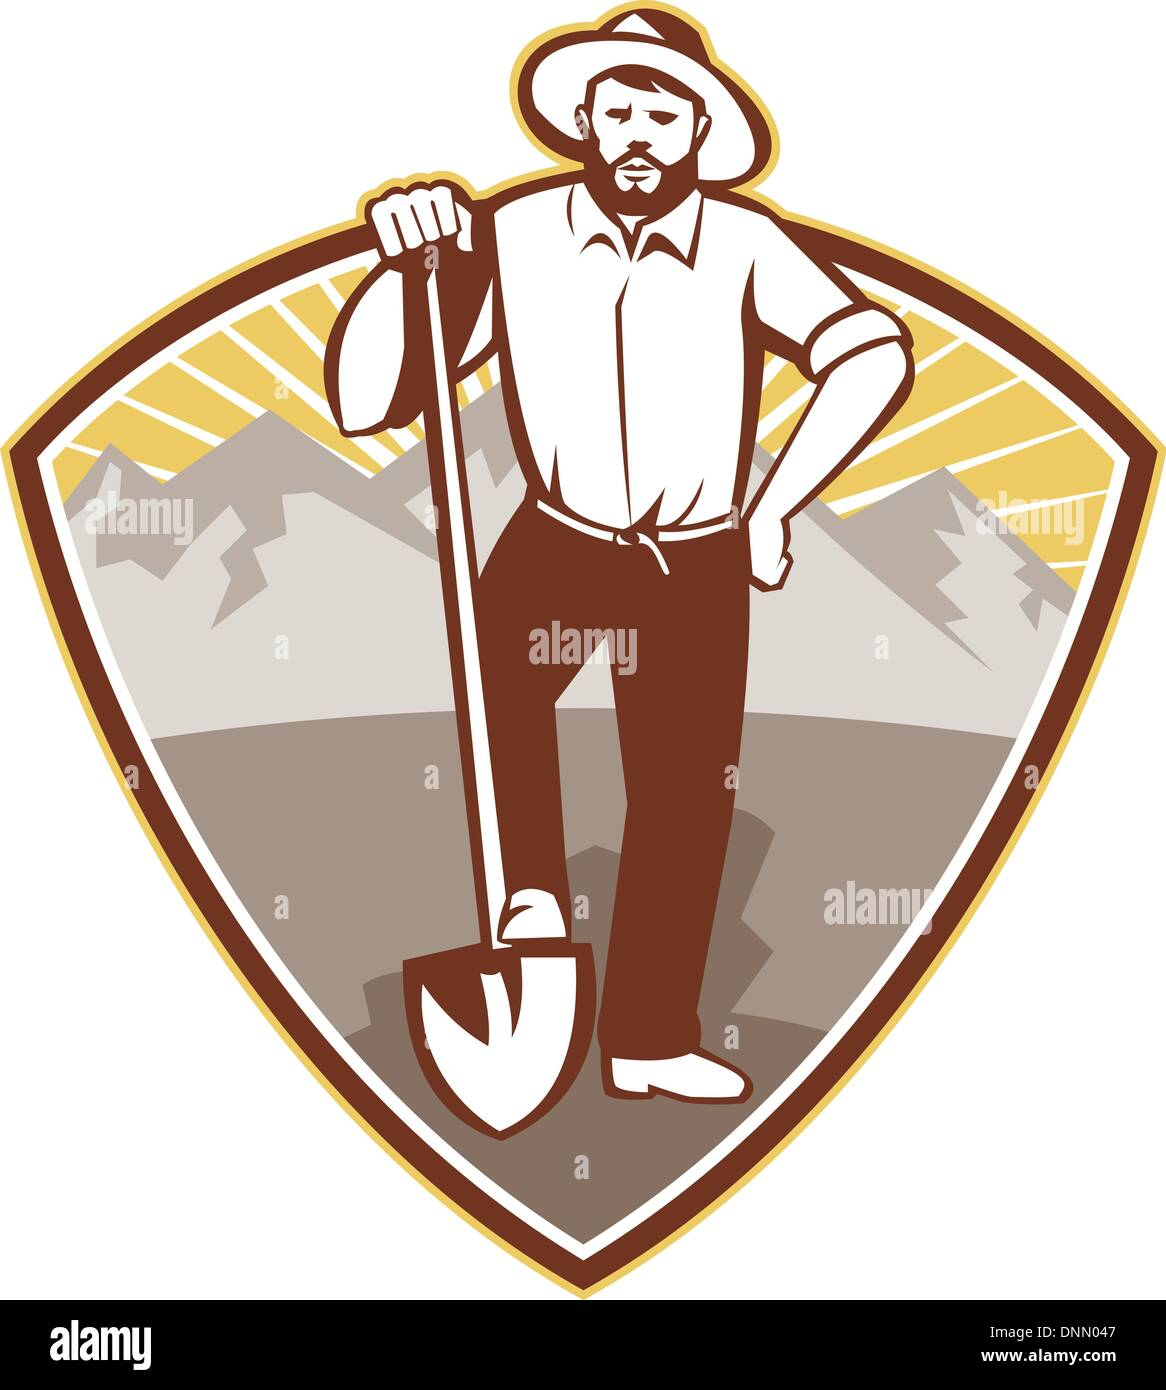 illustration of a gold digger miner prospector with shovel spade done in retro style set inside shield with mountains in background. - Stock Image